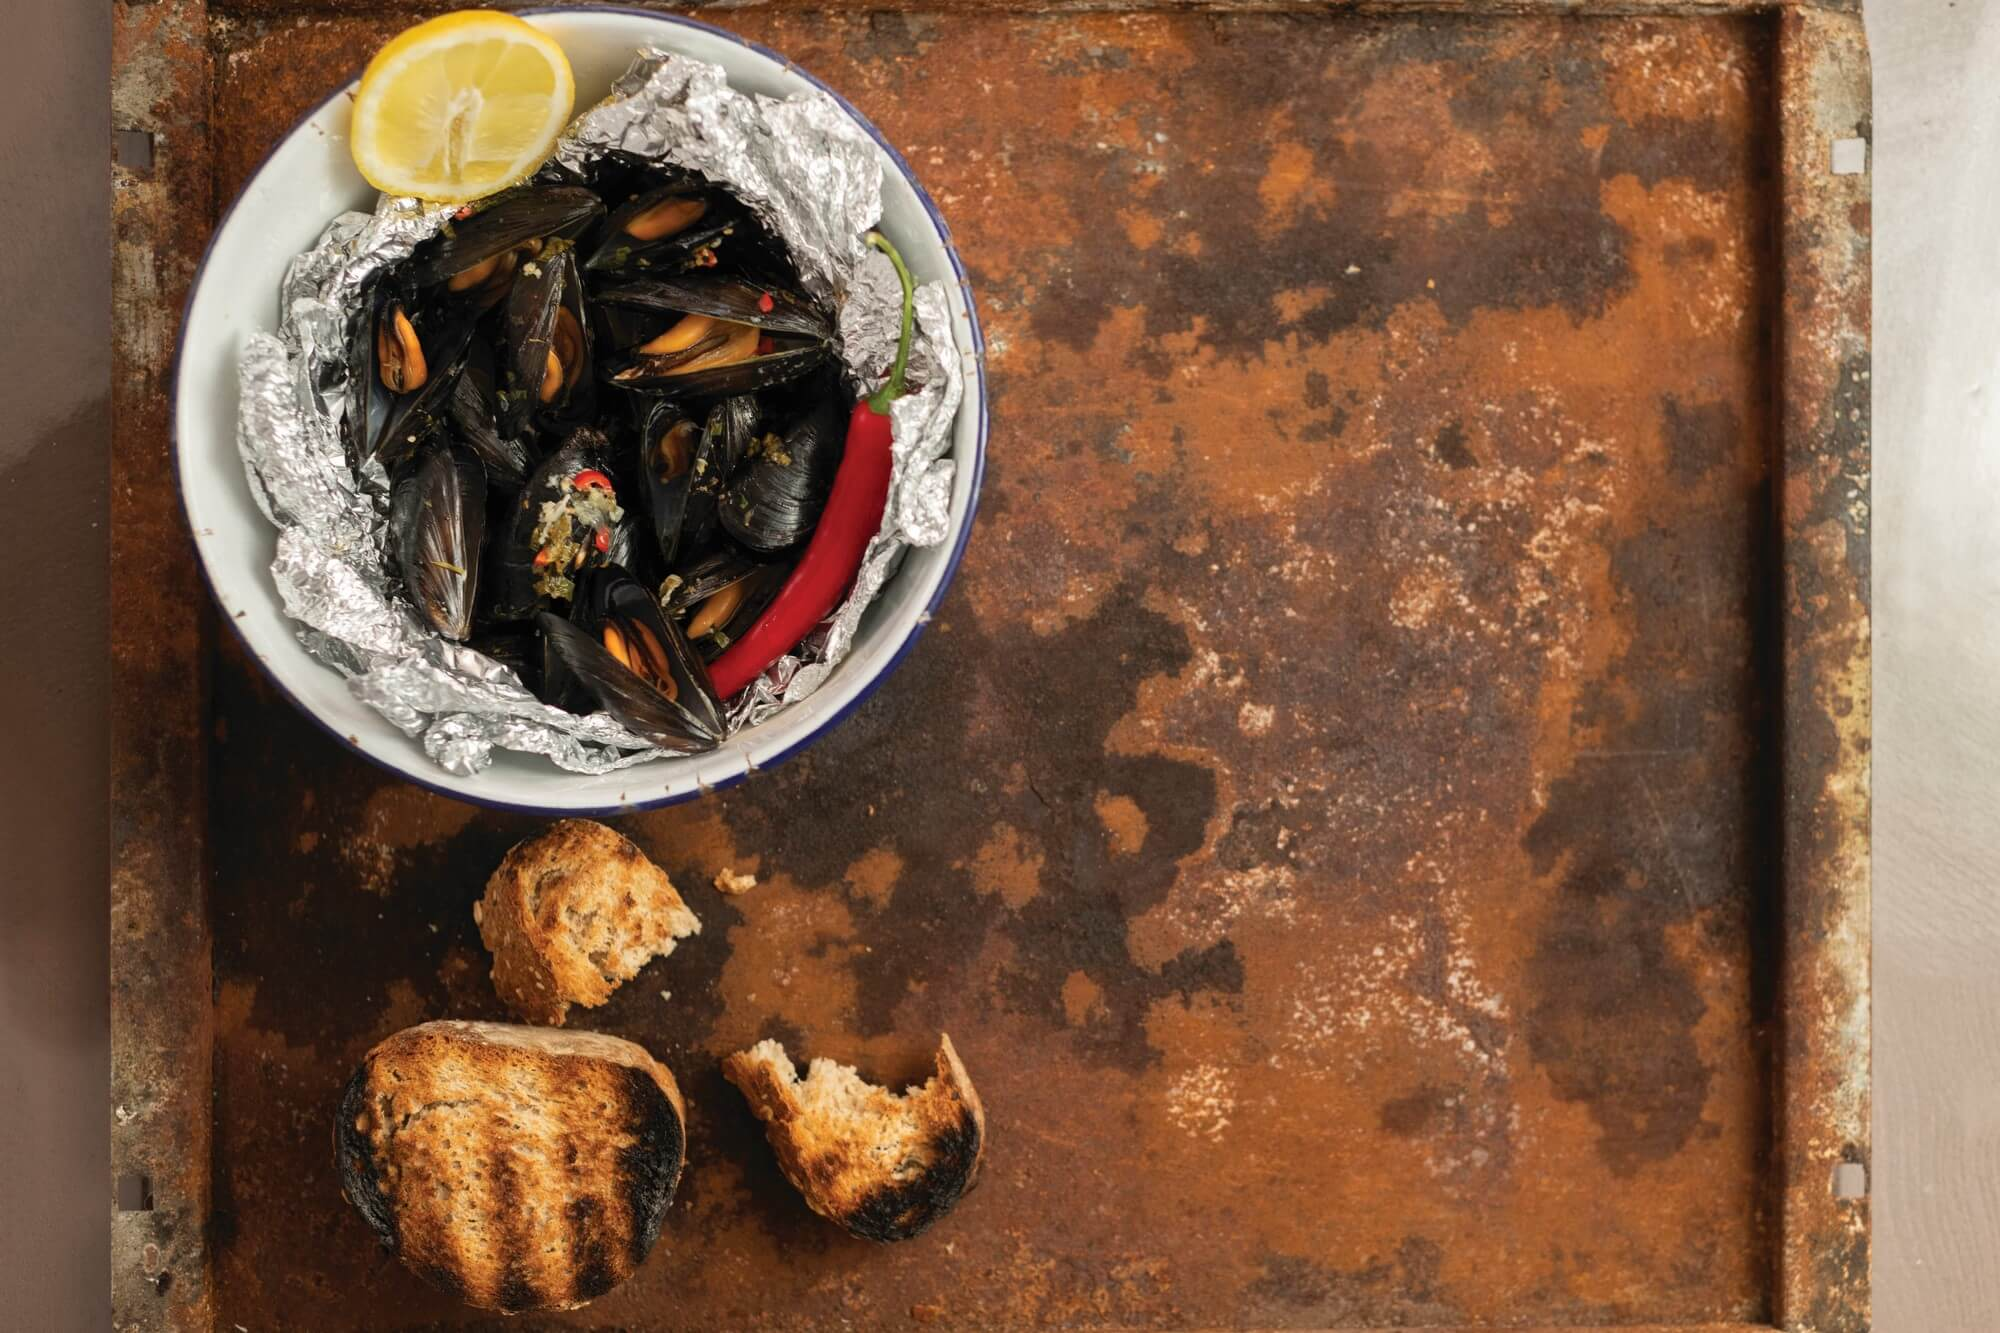 Grilled Mussels with Garlic Butter and Chilli